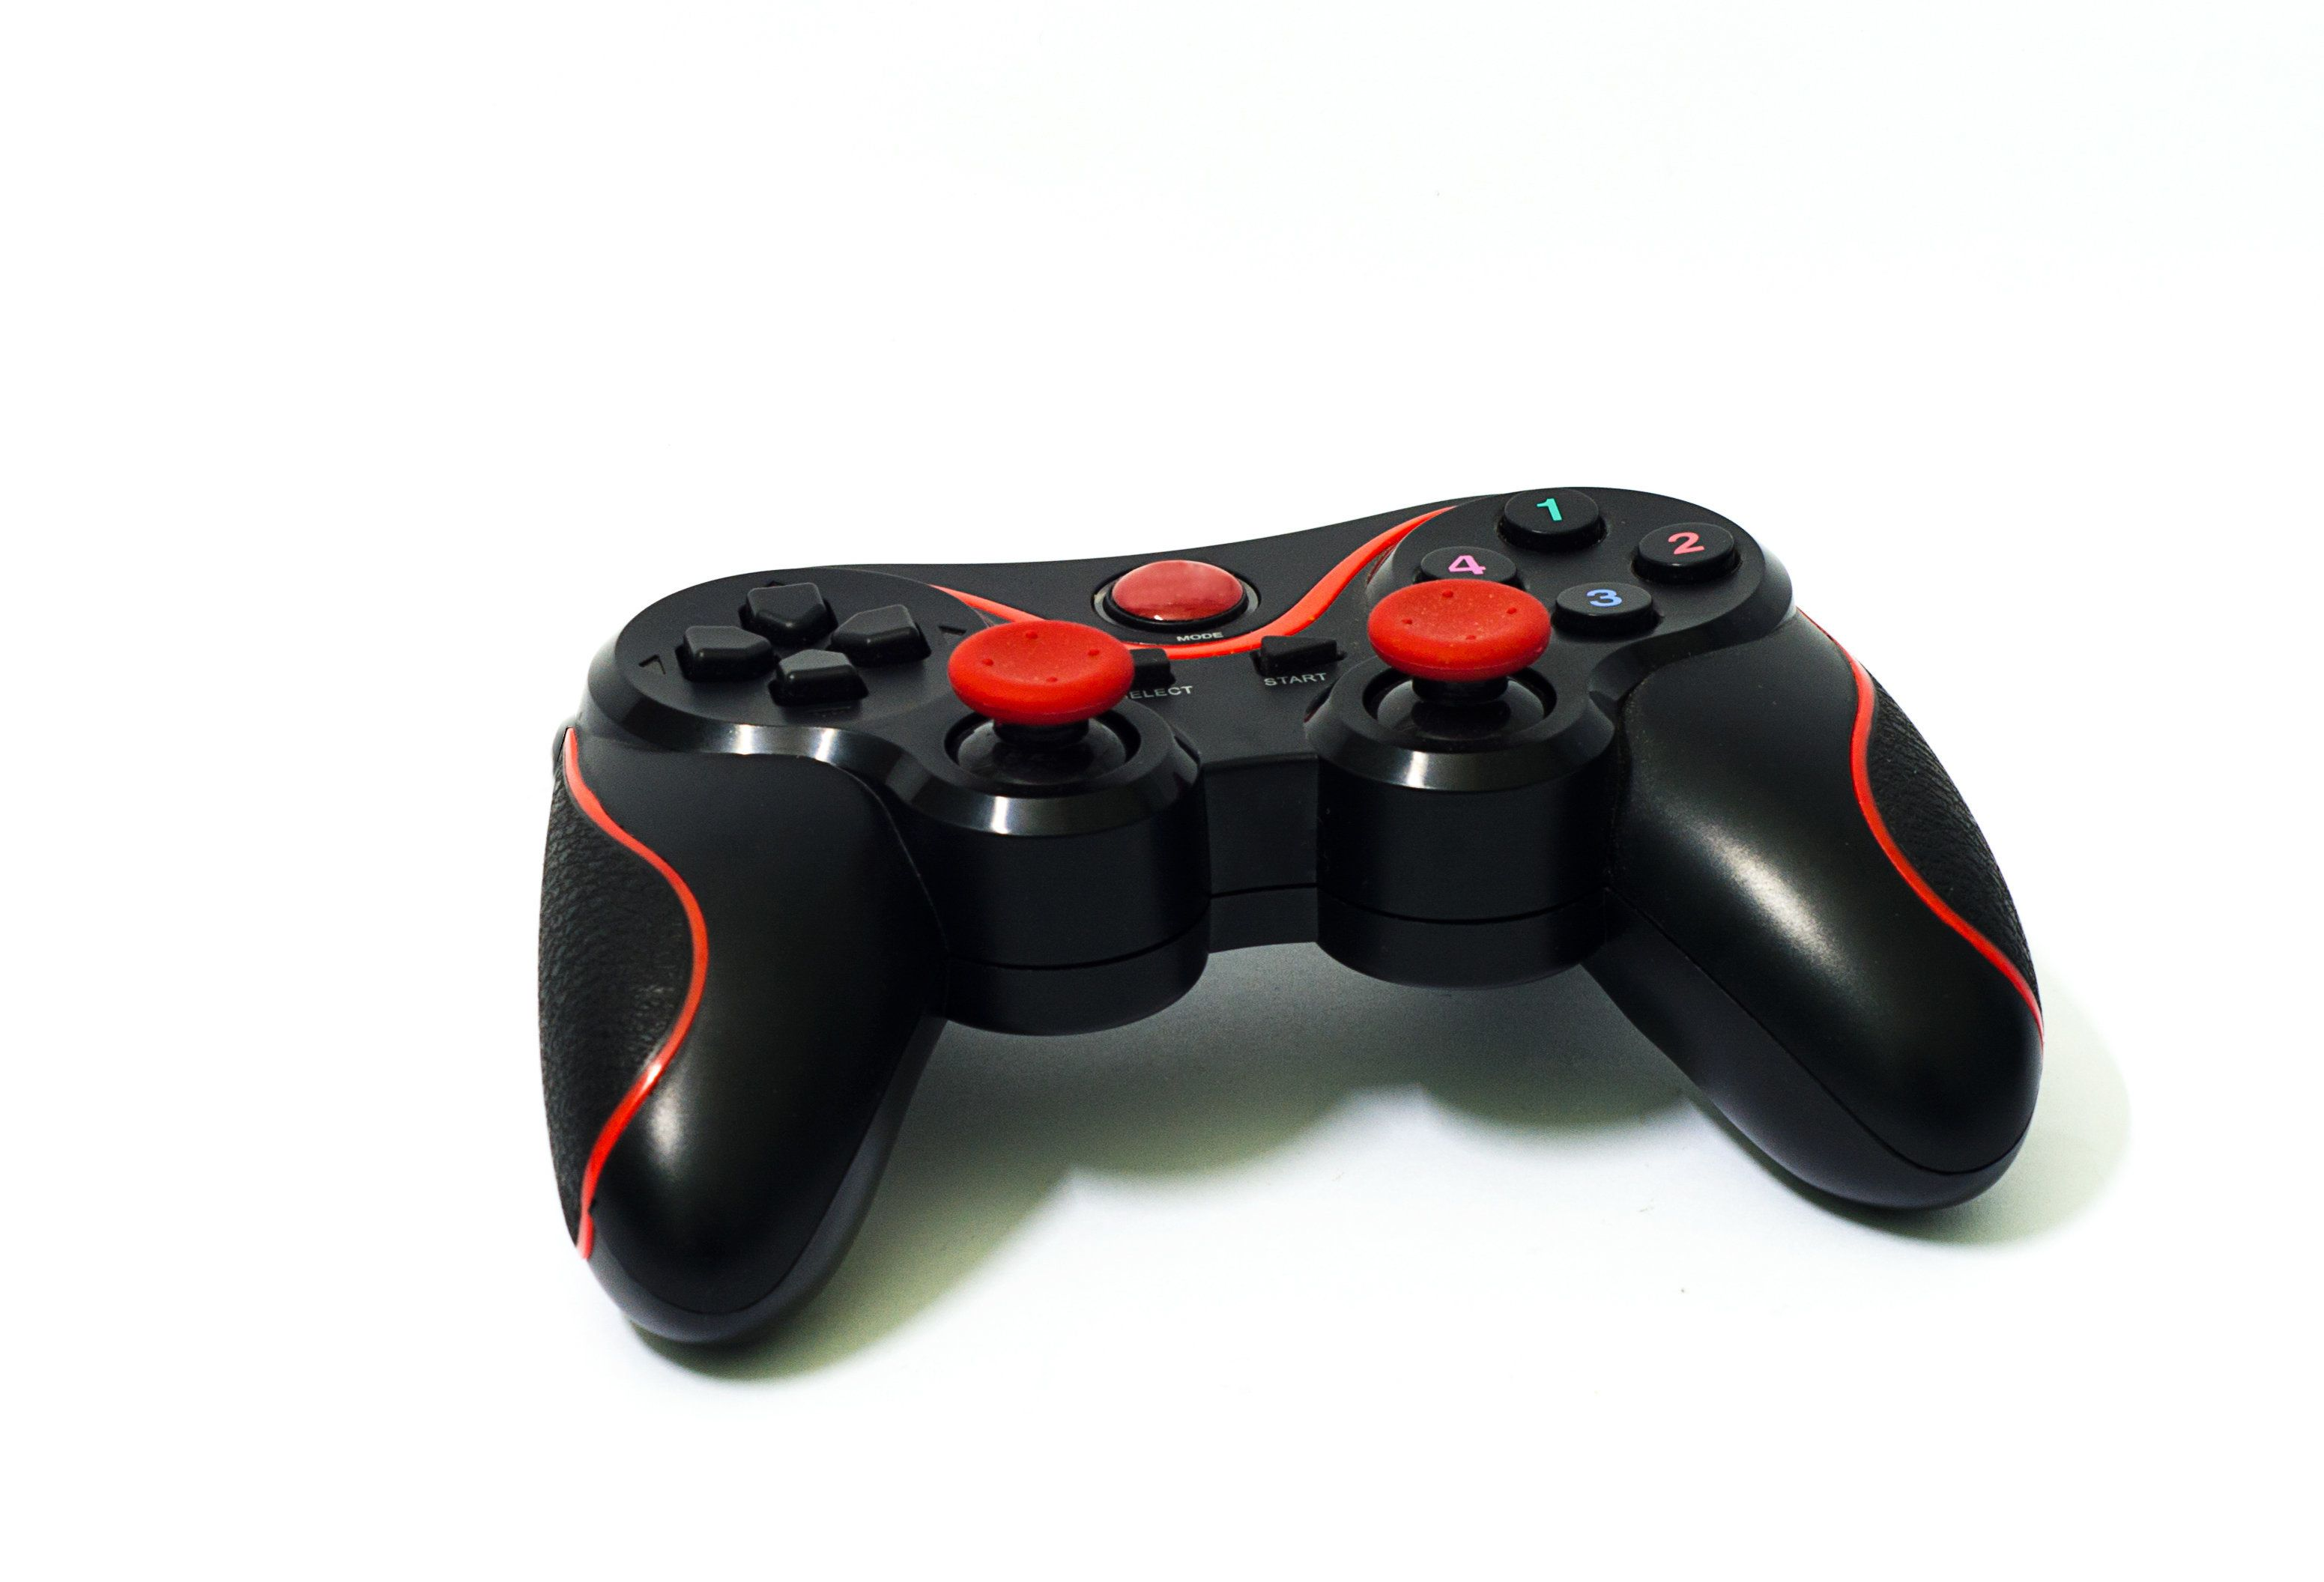 Generic black and red gamepad isolated on white.